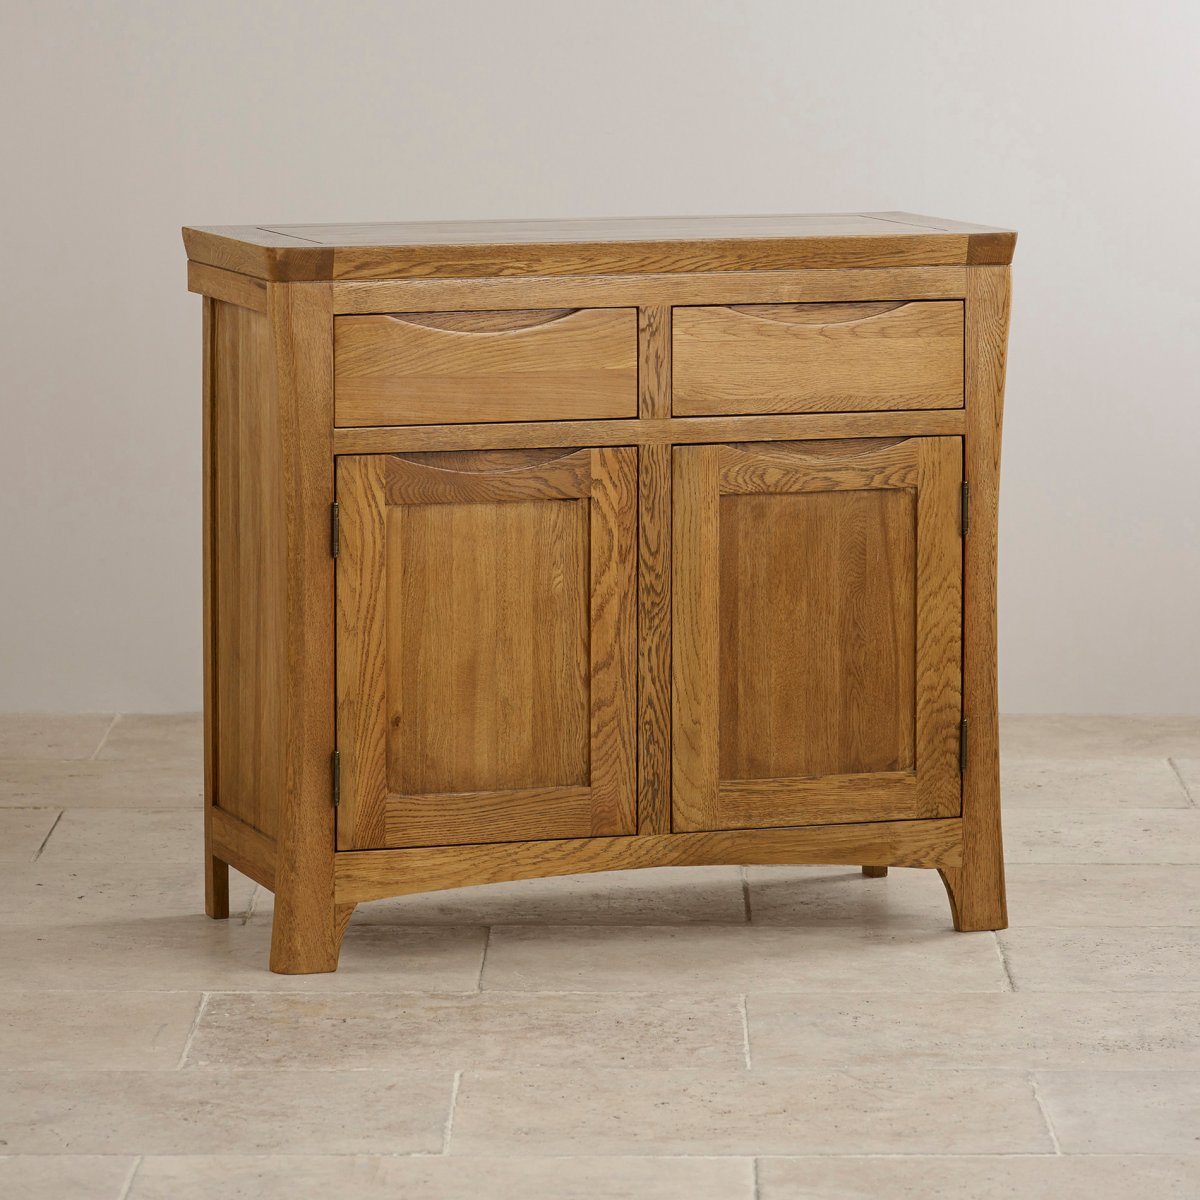 Orrick small sideboard in rustic solid oak oak furniture for Oak furniture land